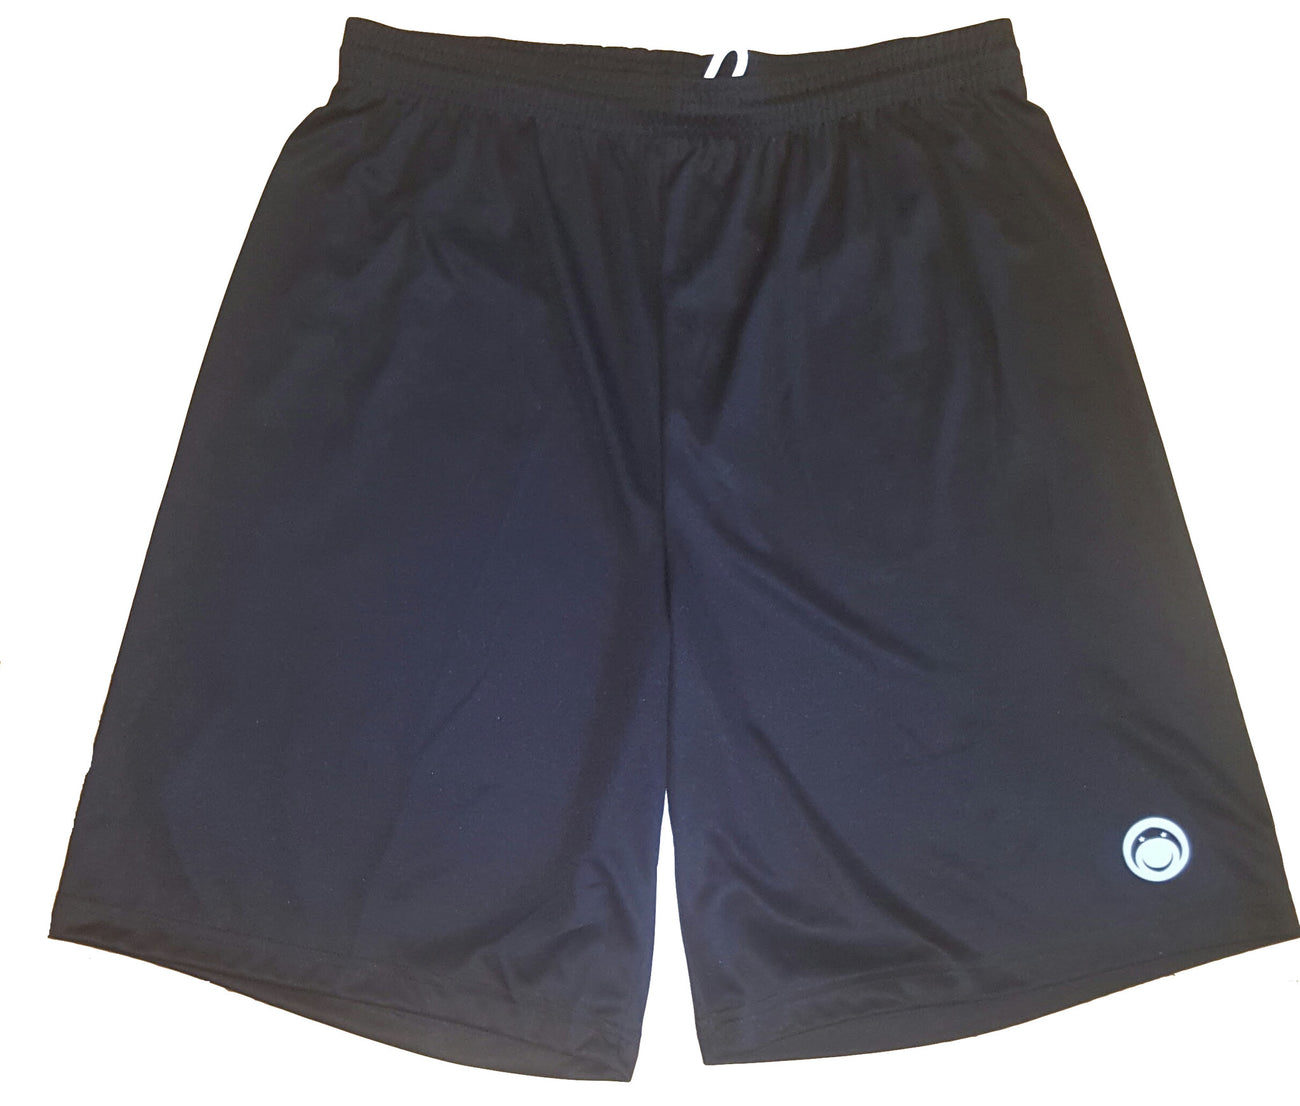 Bucaleany Training Shorts